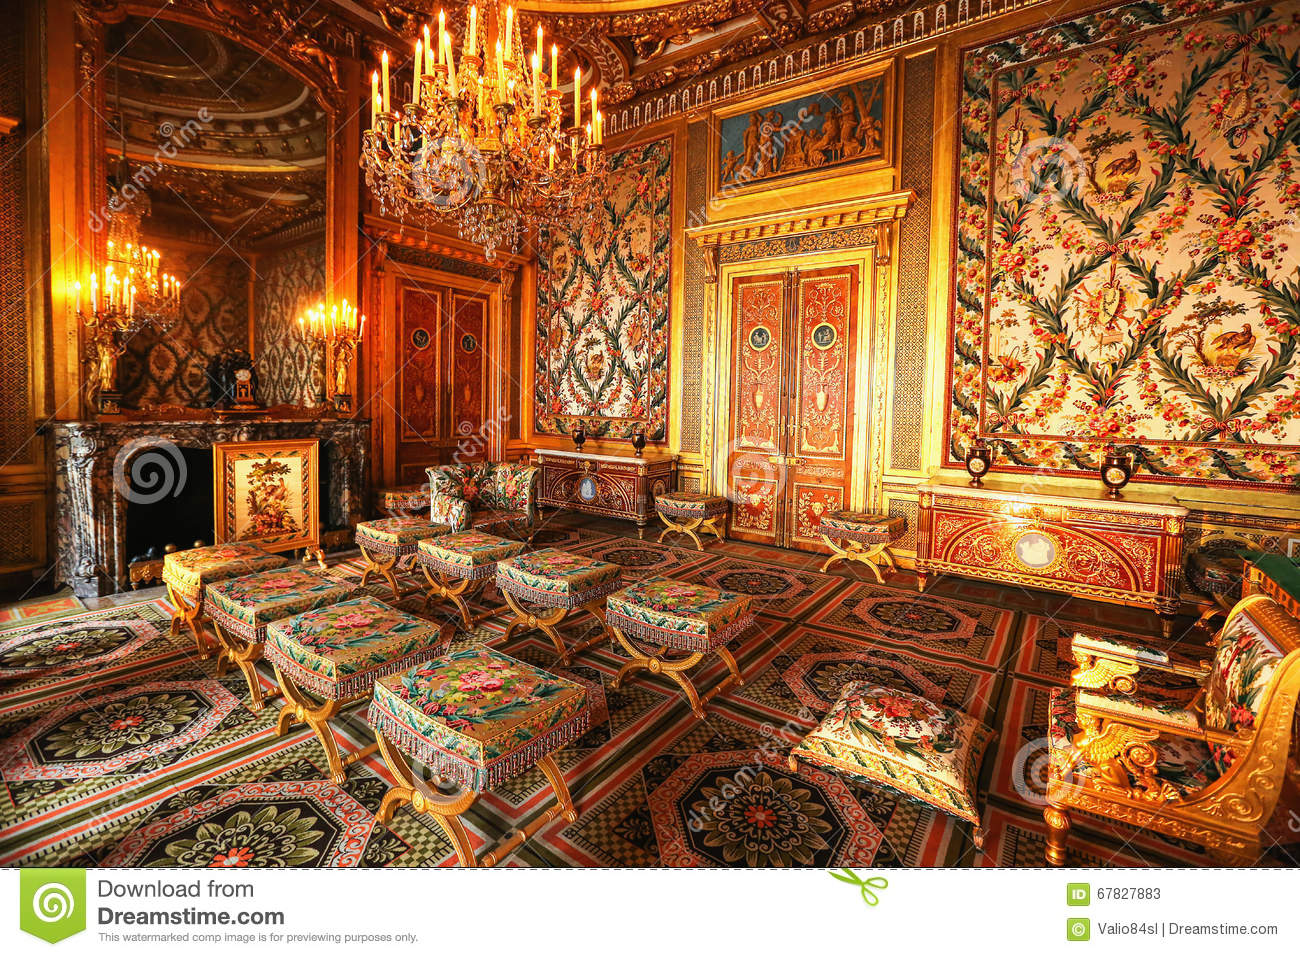 Paris, France, Versailles Palace Interior Stock Image - Image of ...